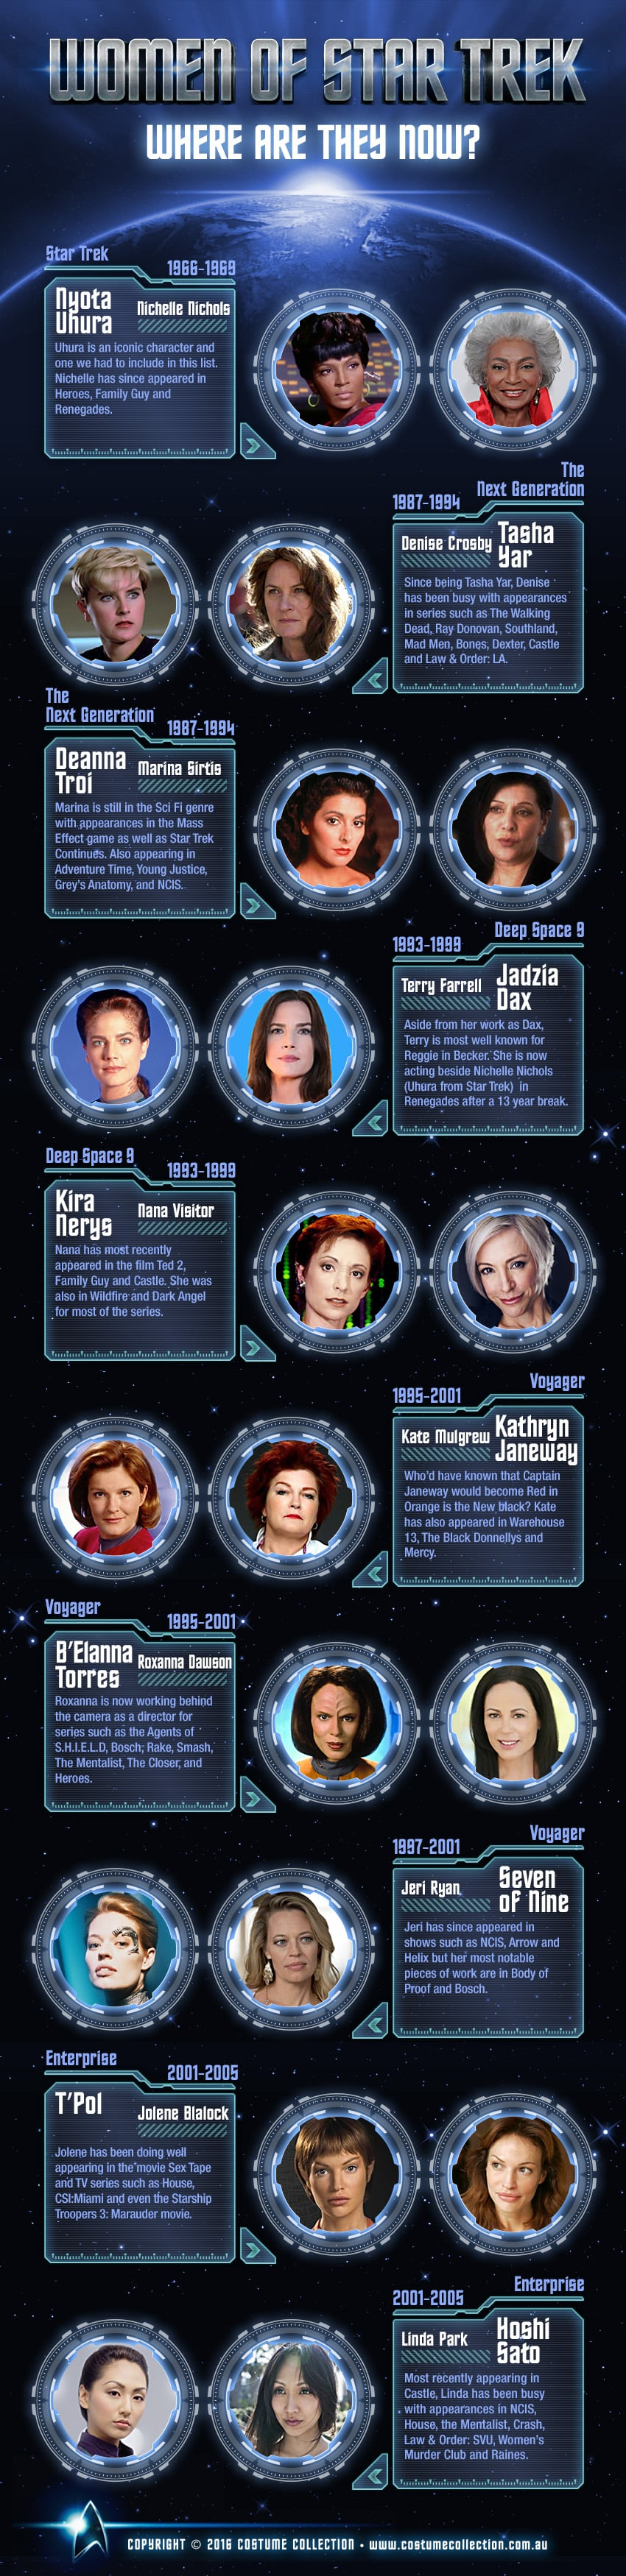 Women of Star Trek: Where Are They Now?